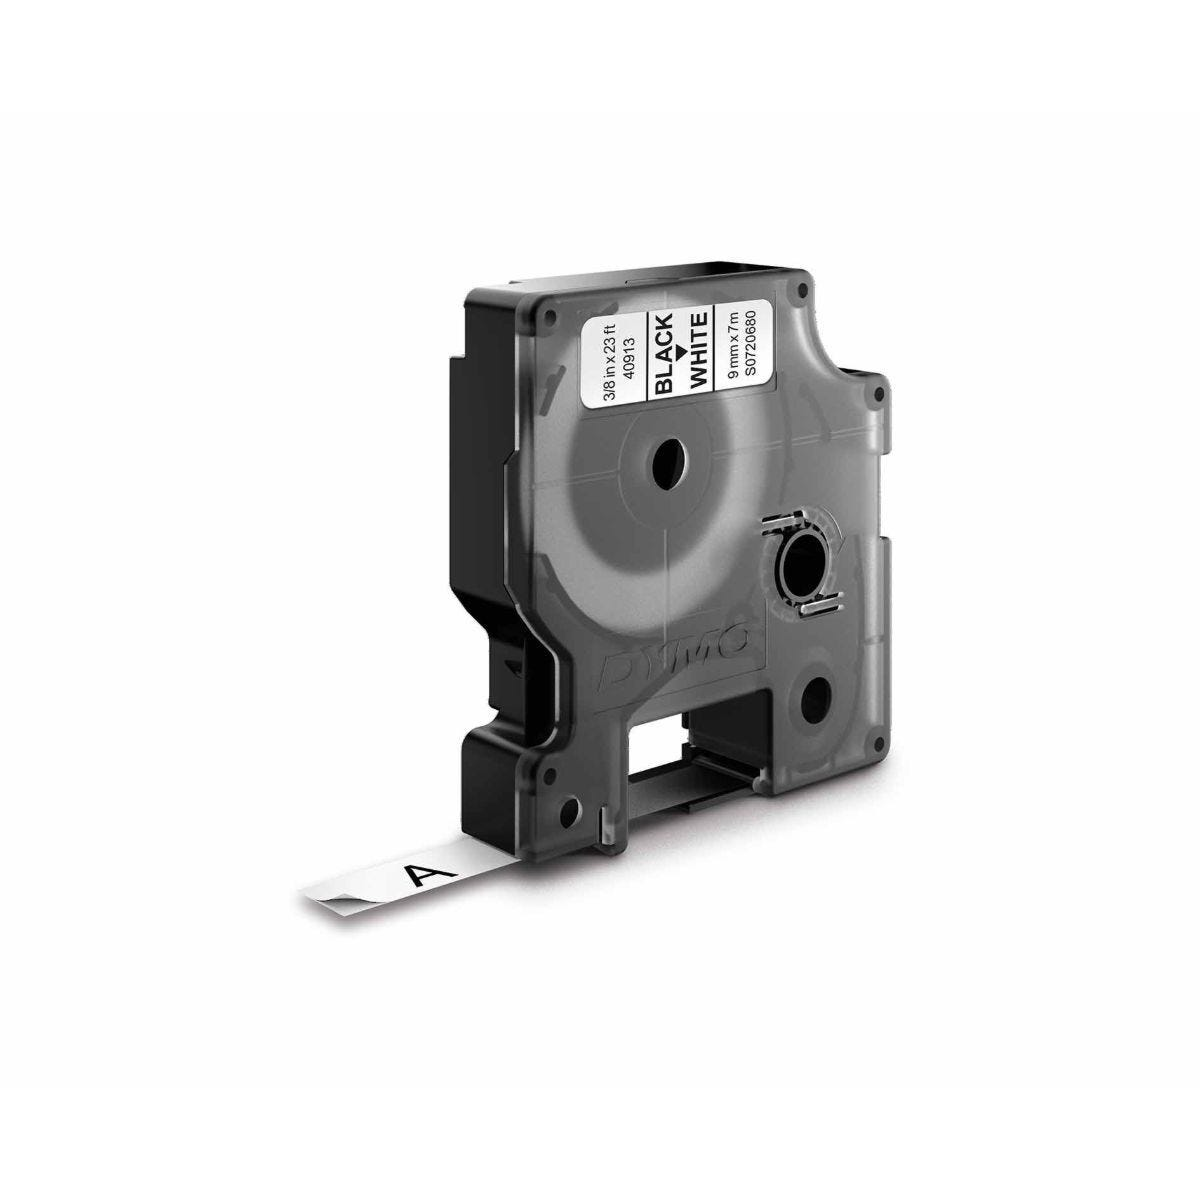 Dymo D1 Label Tape Black and White 9mm x 7m